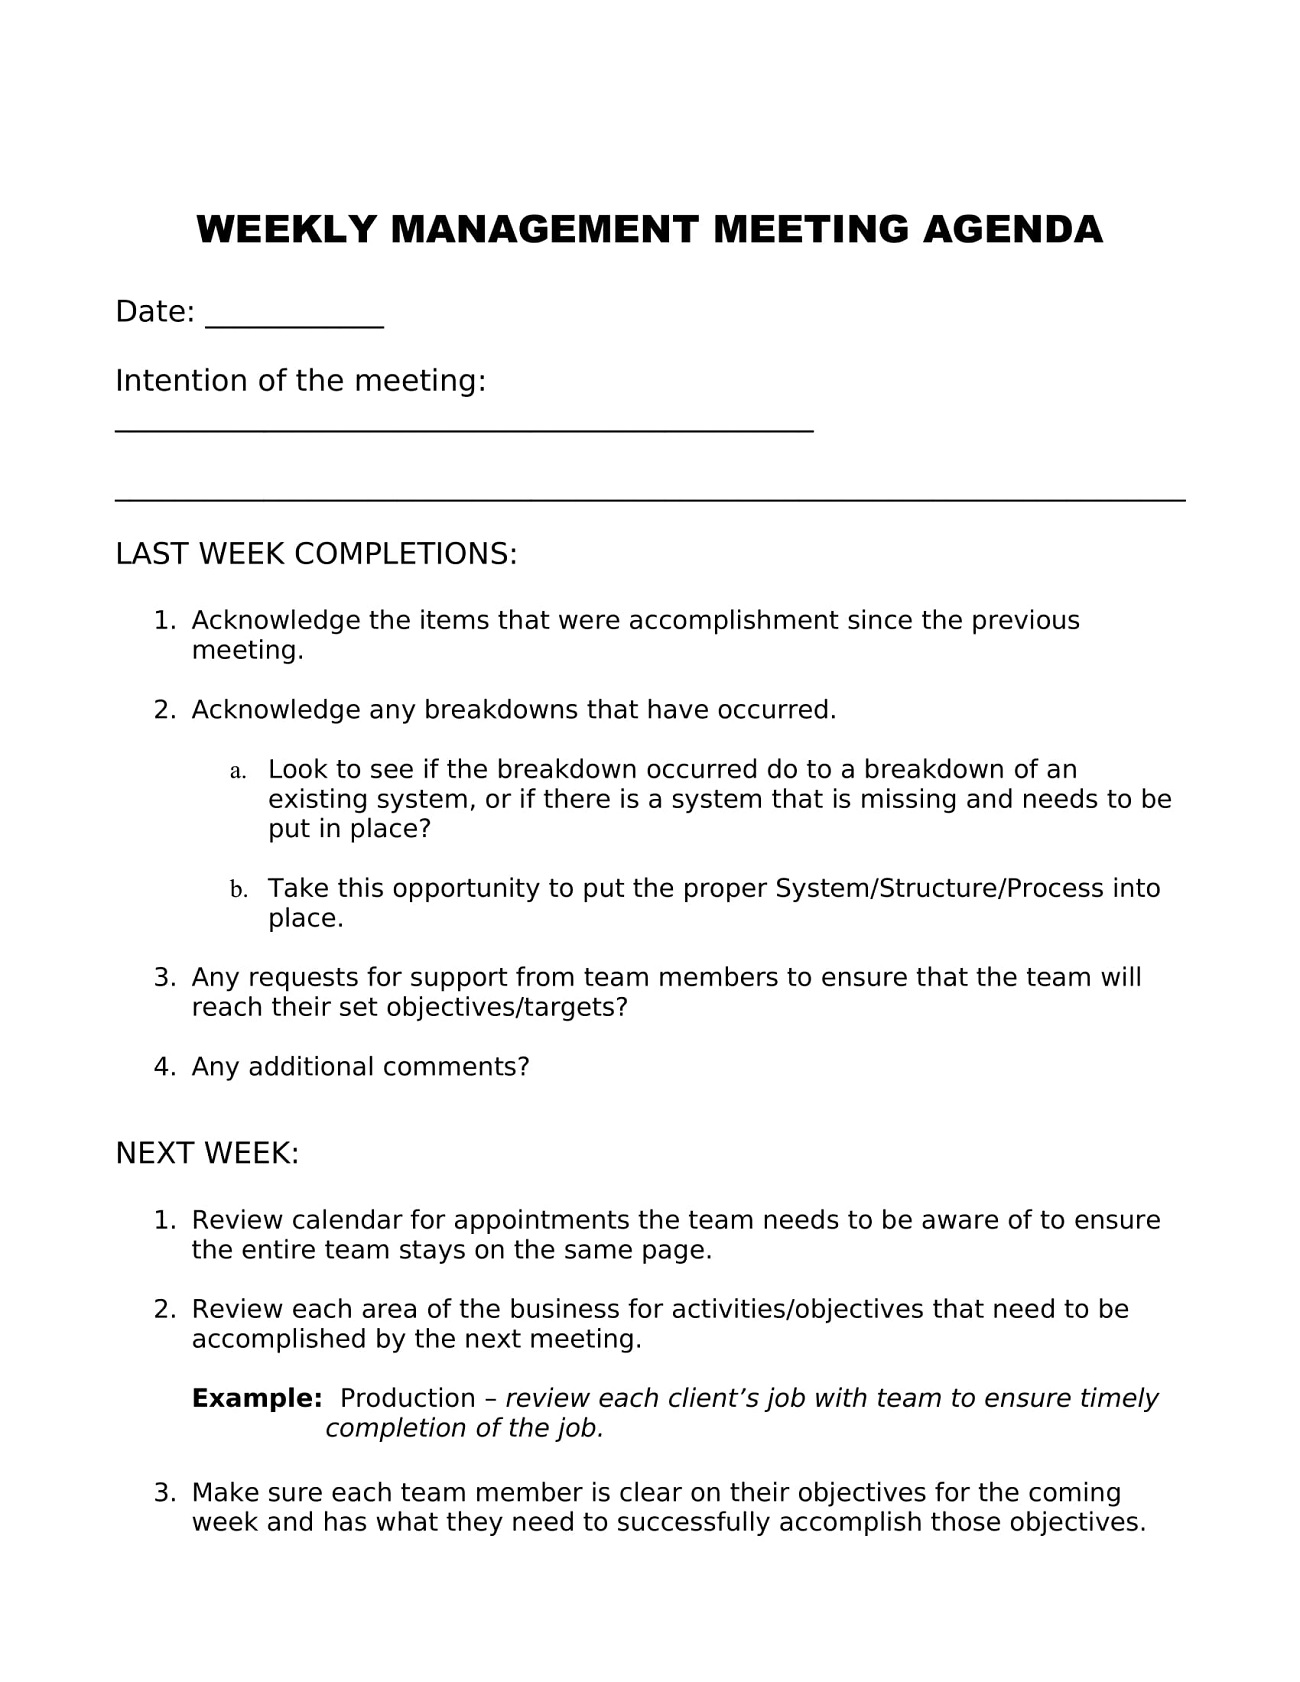 Weekly Management Meeting Agenda Template Word Monthly Topics Case  Example Full